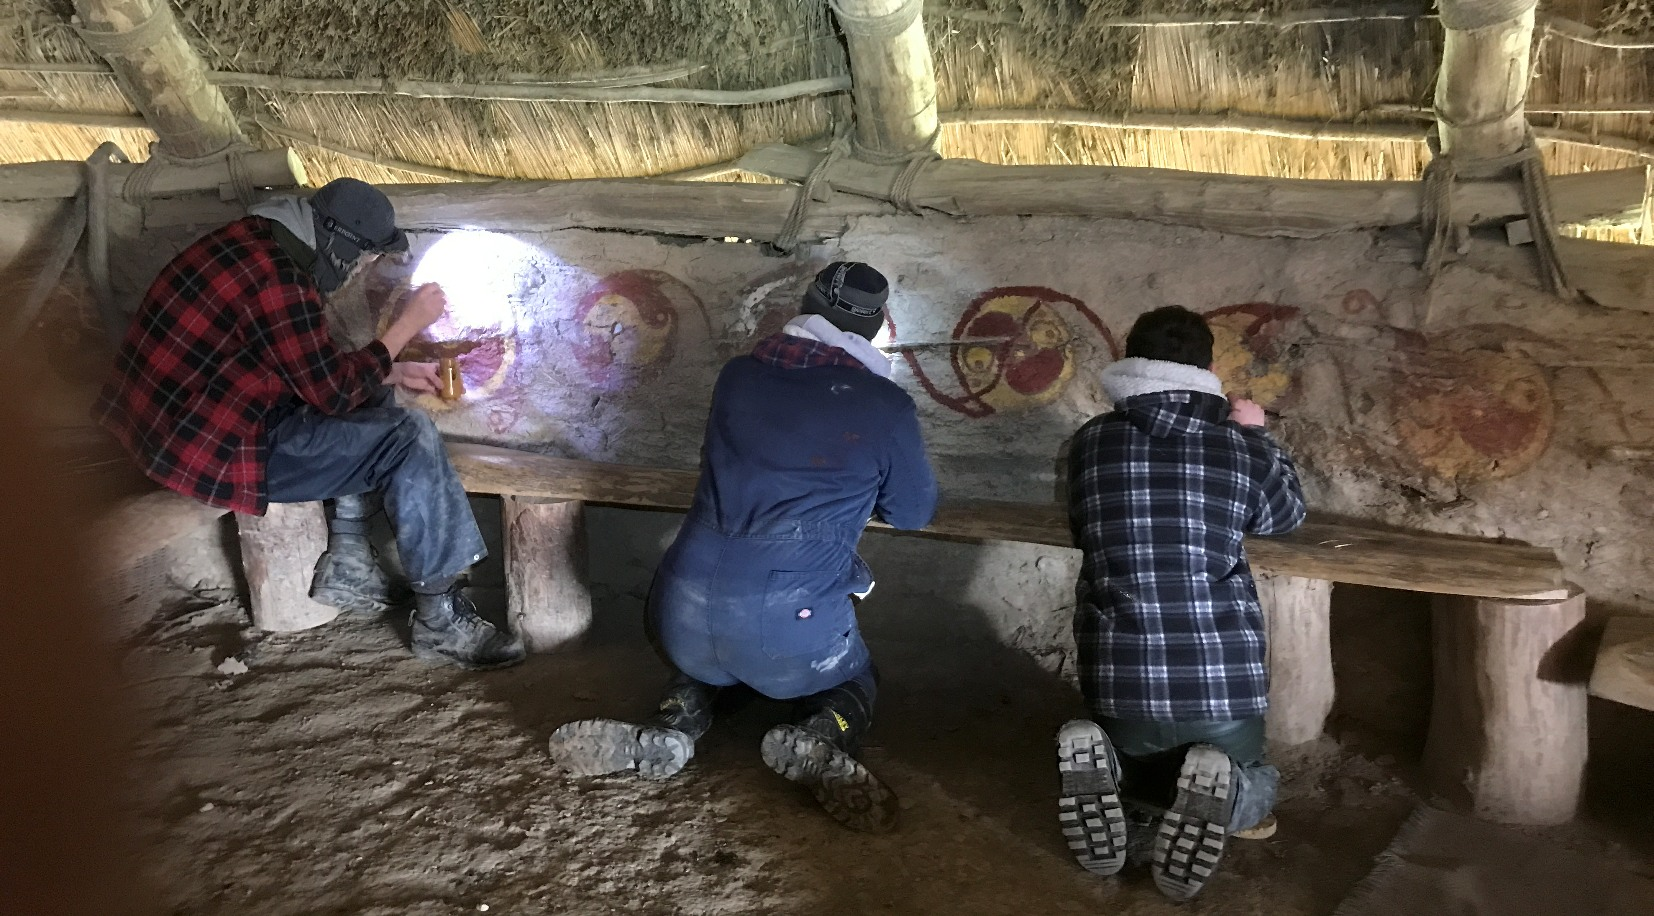 Painting an IronAge Roundhouse with Claypaint